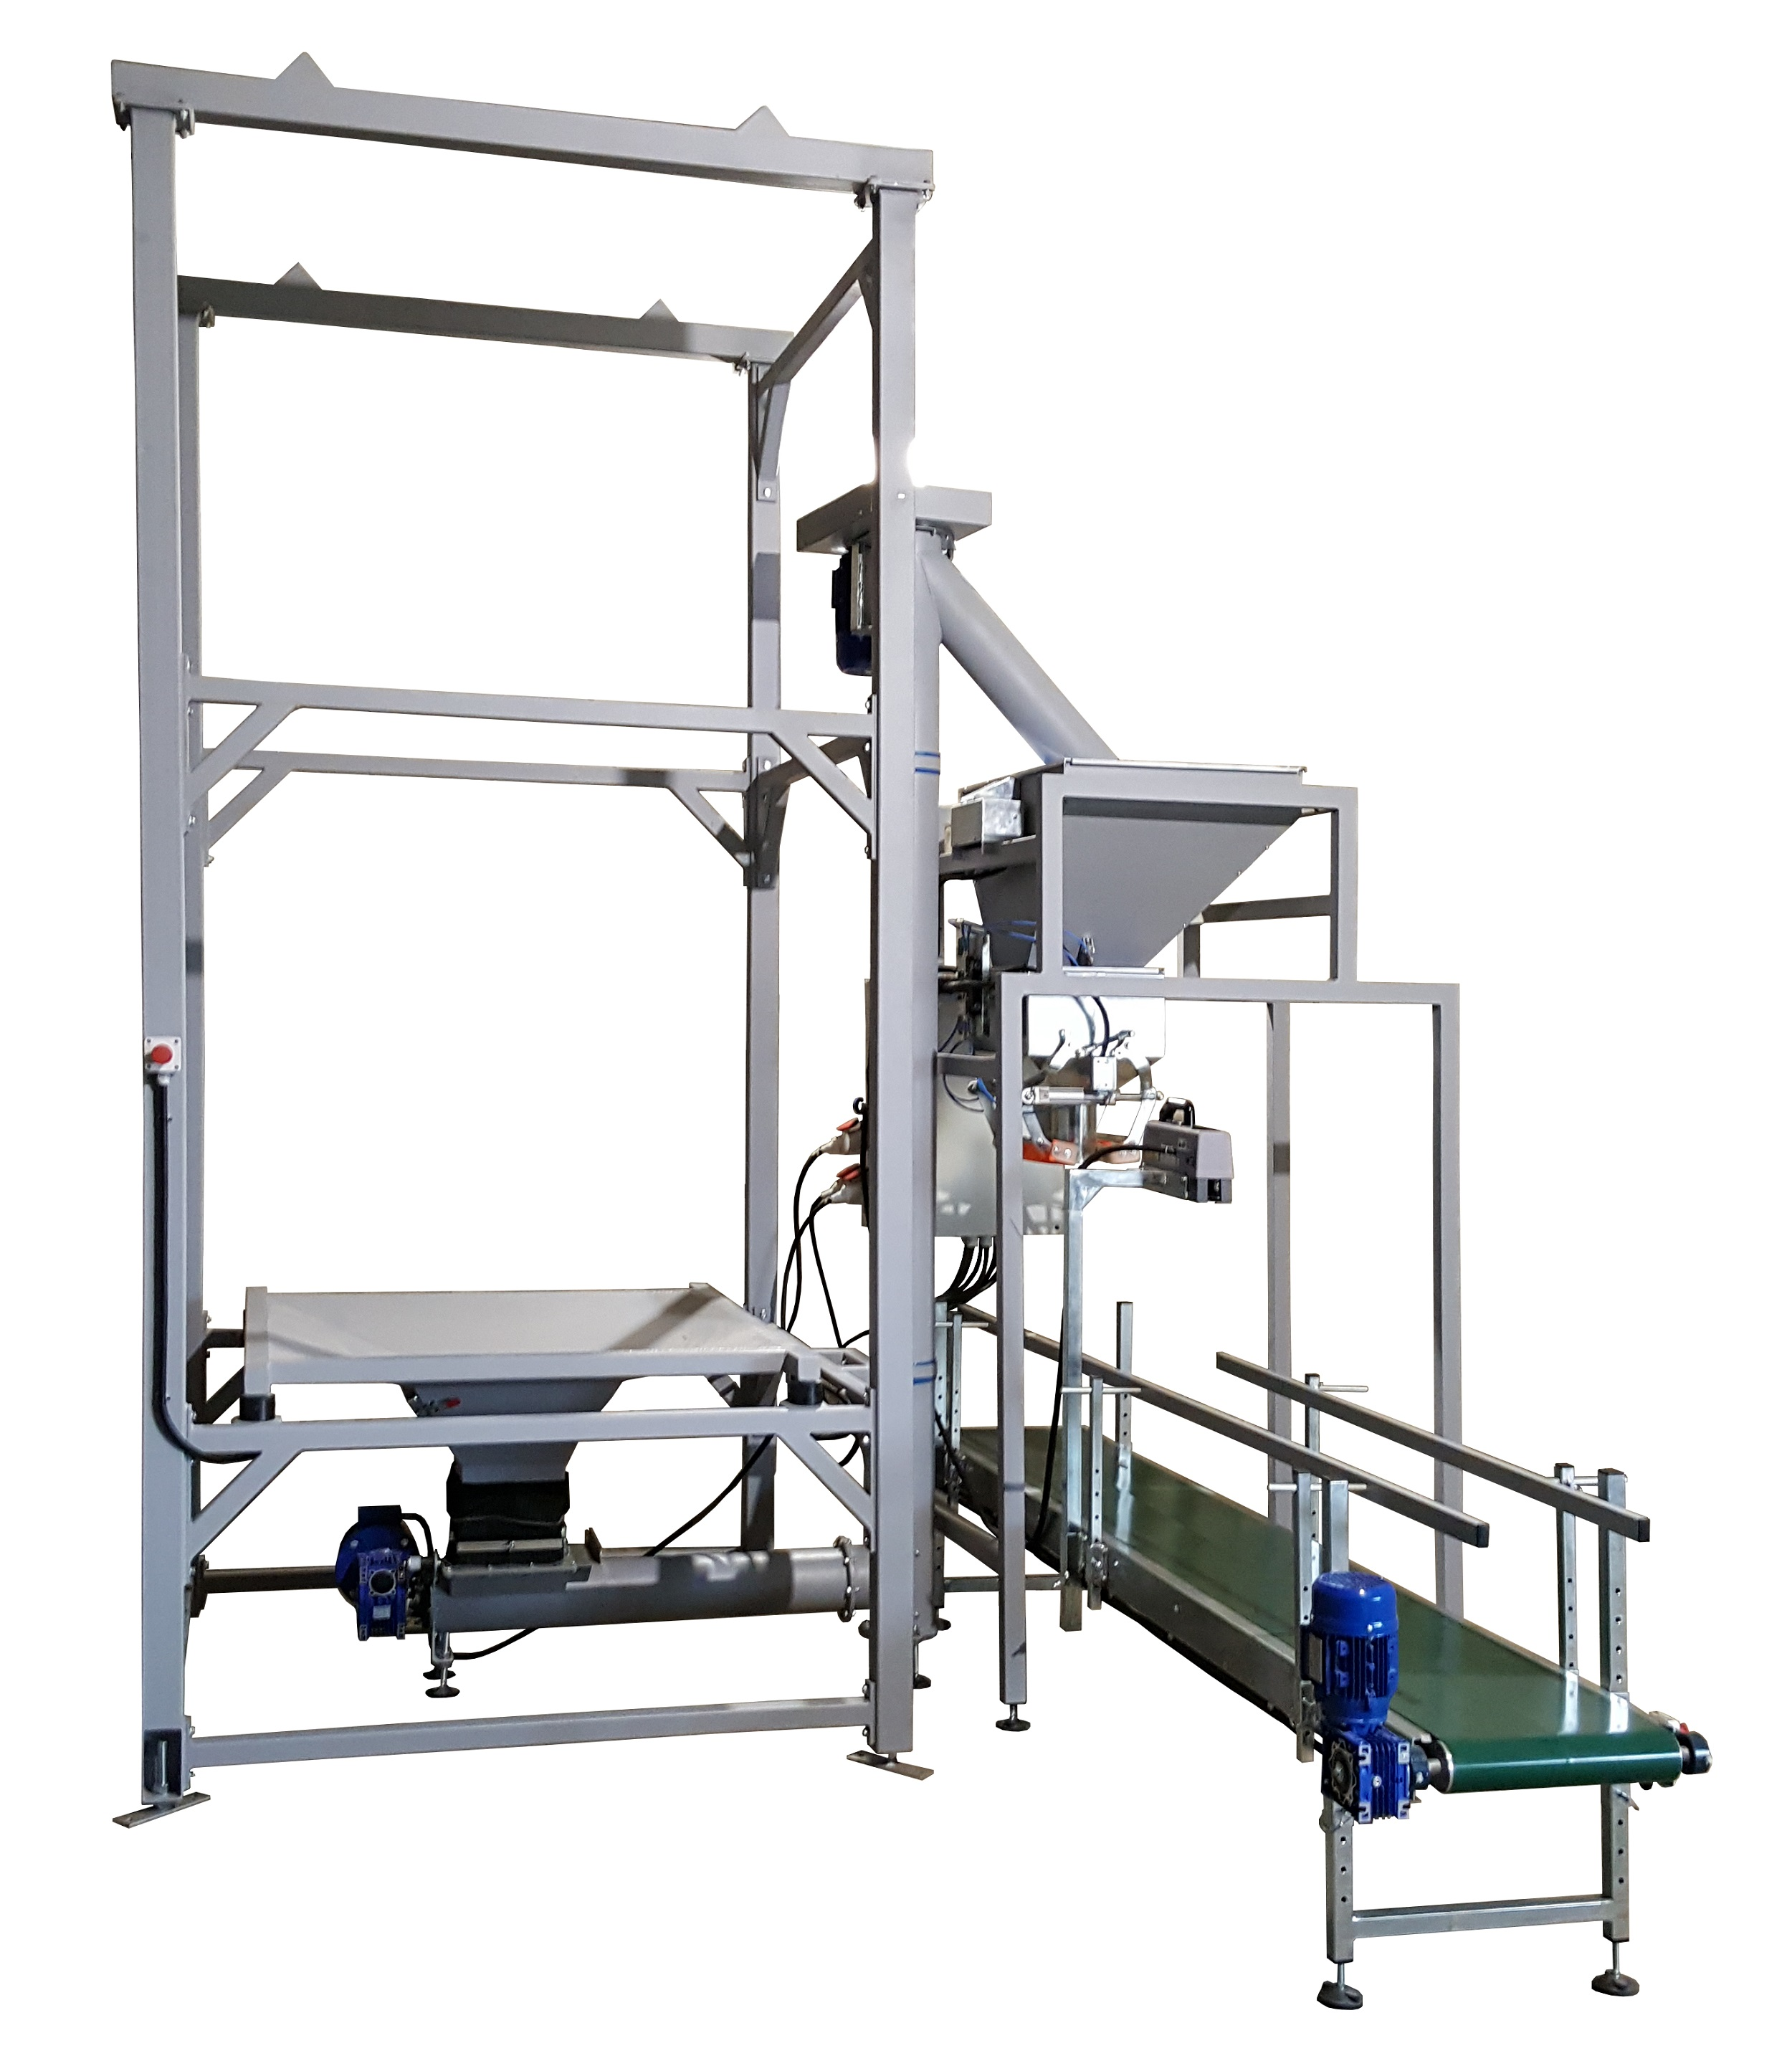 bulk product filling into bags line